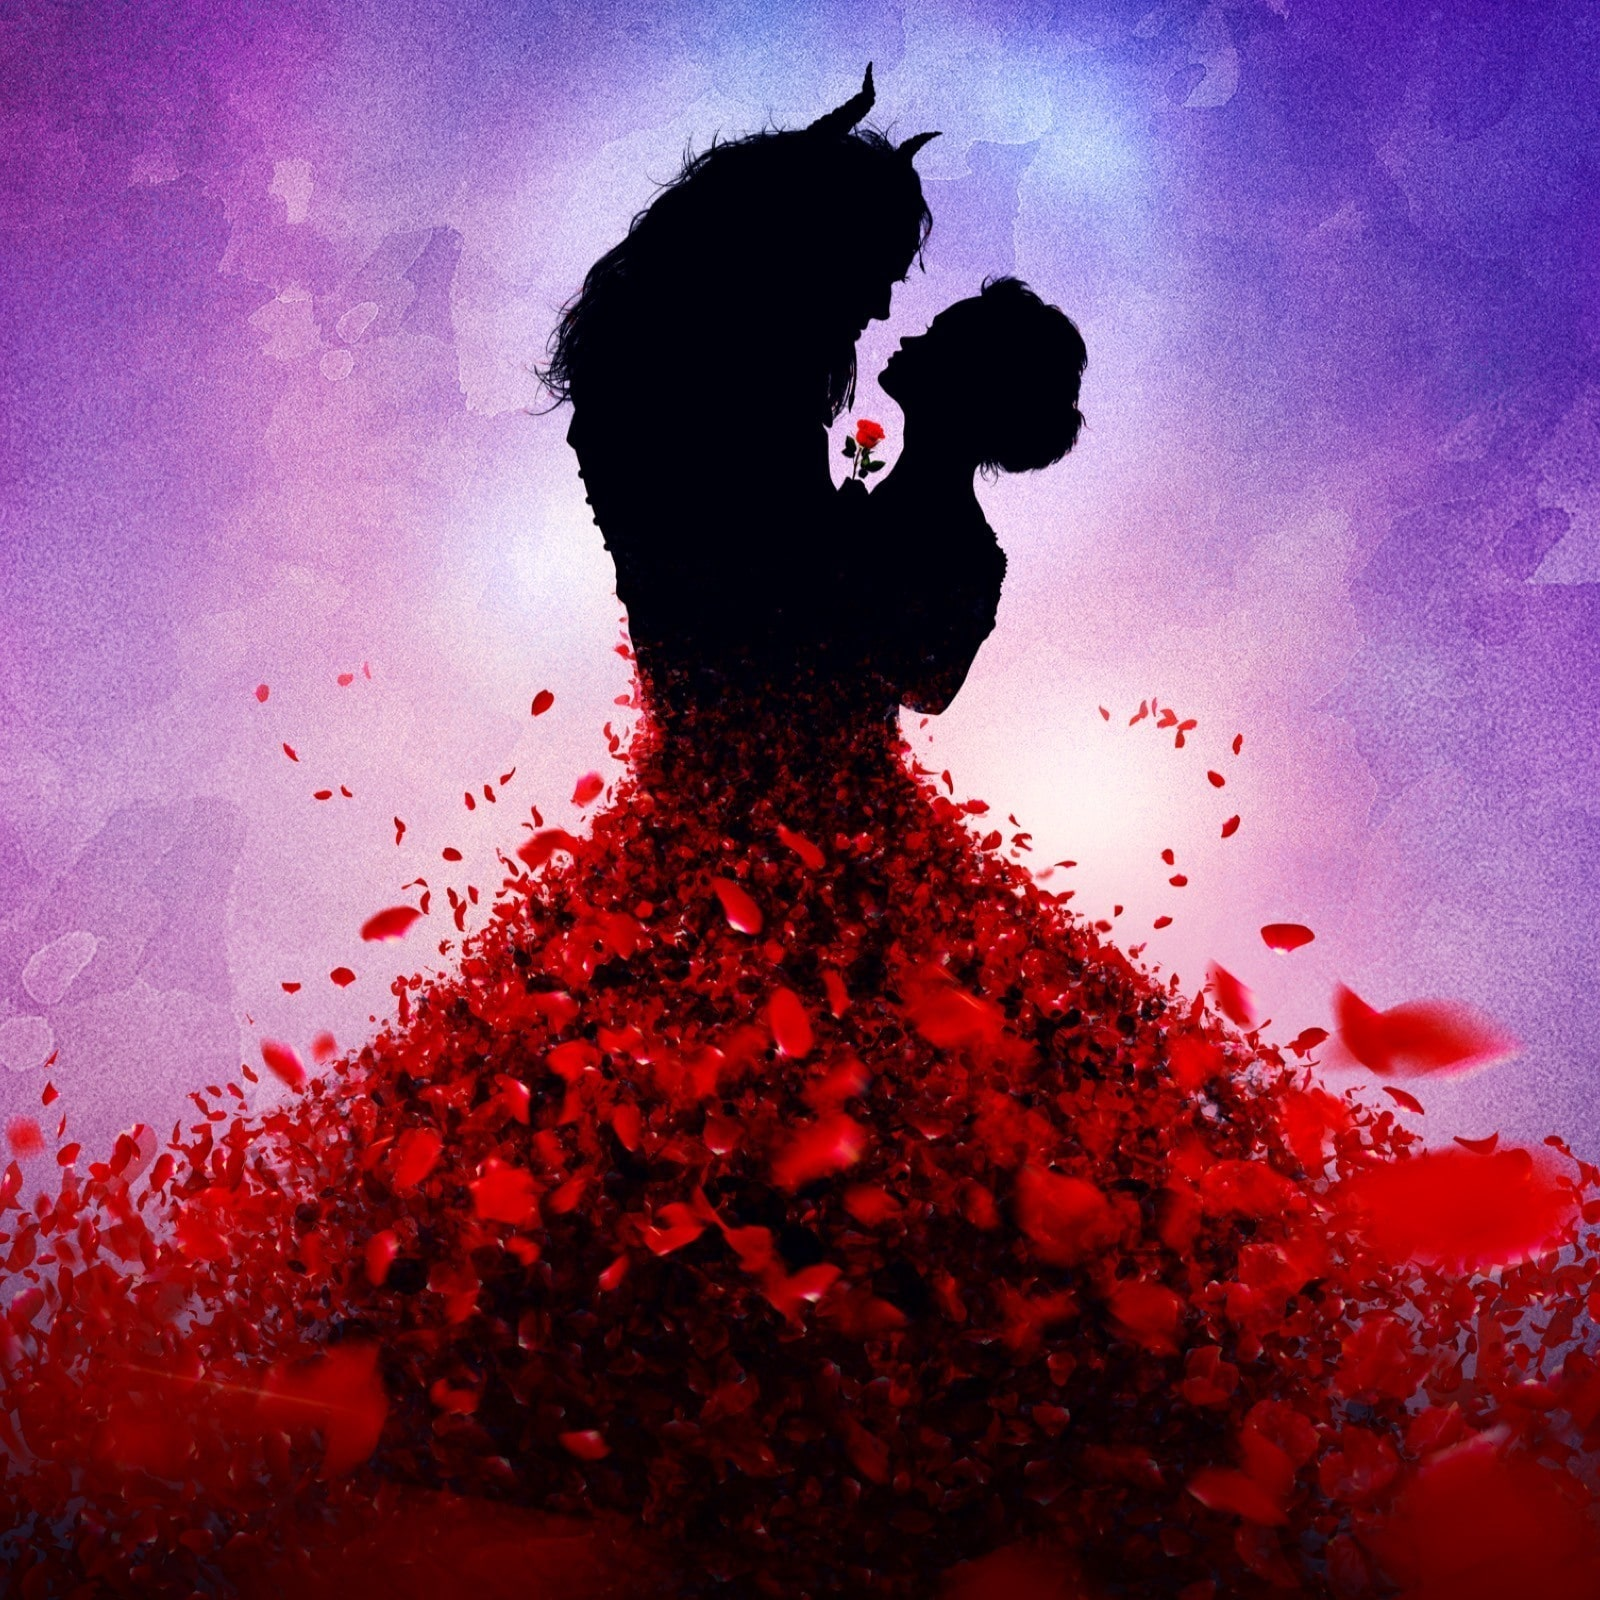 Belle and Beast silhouette with Belle's dress made of rose petals